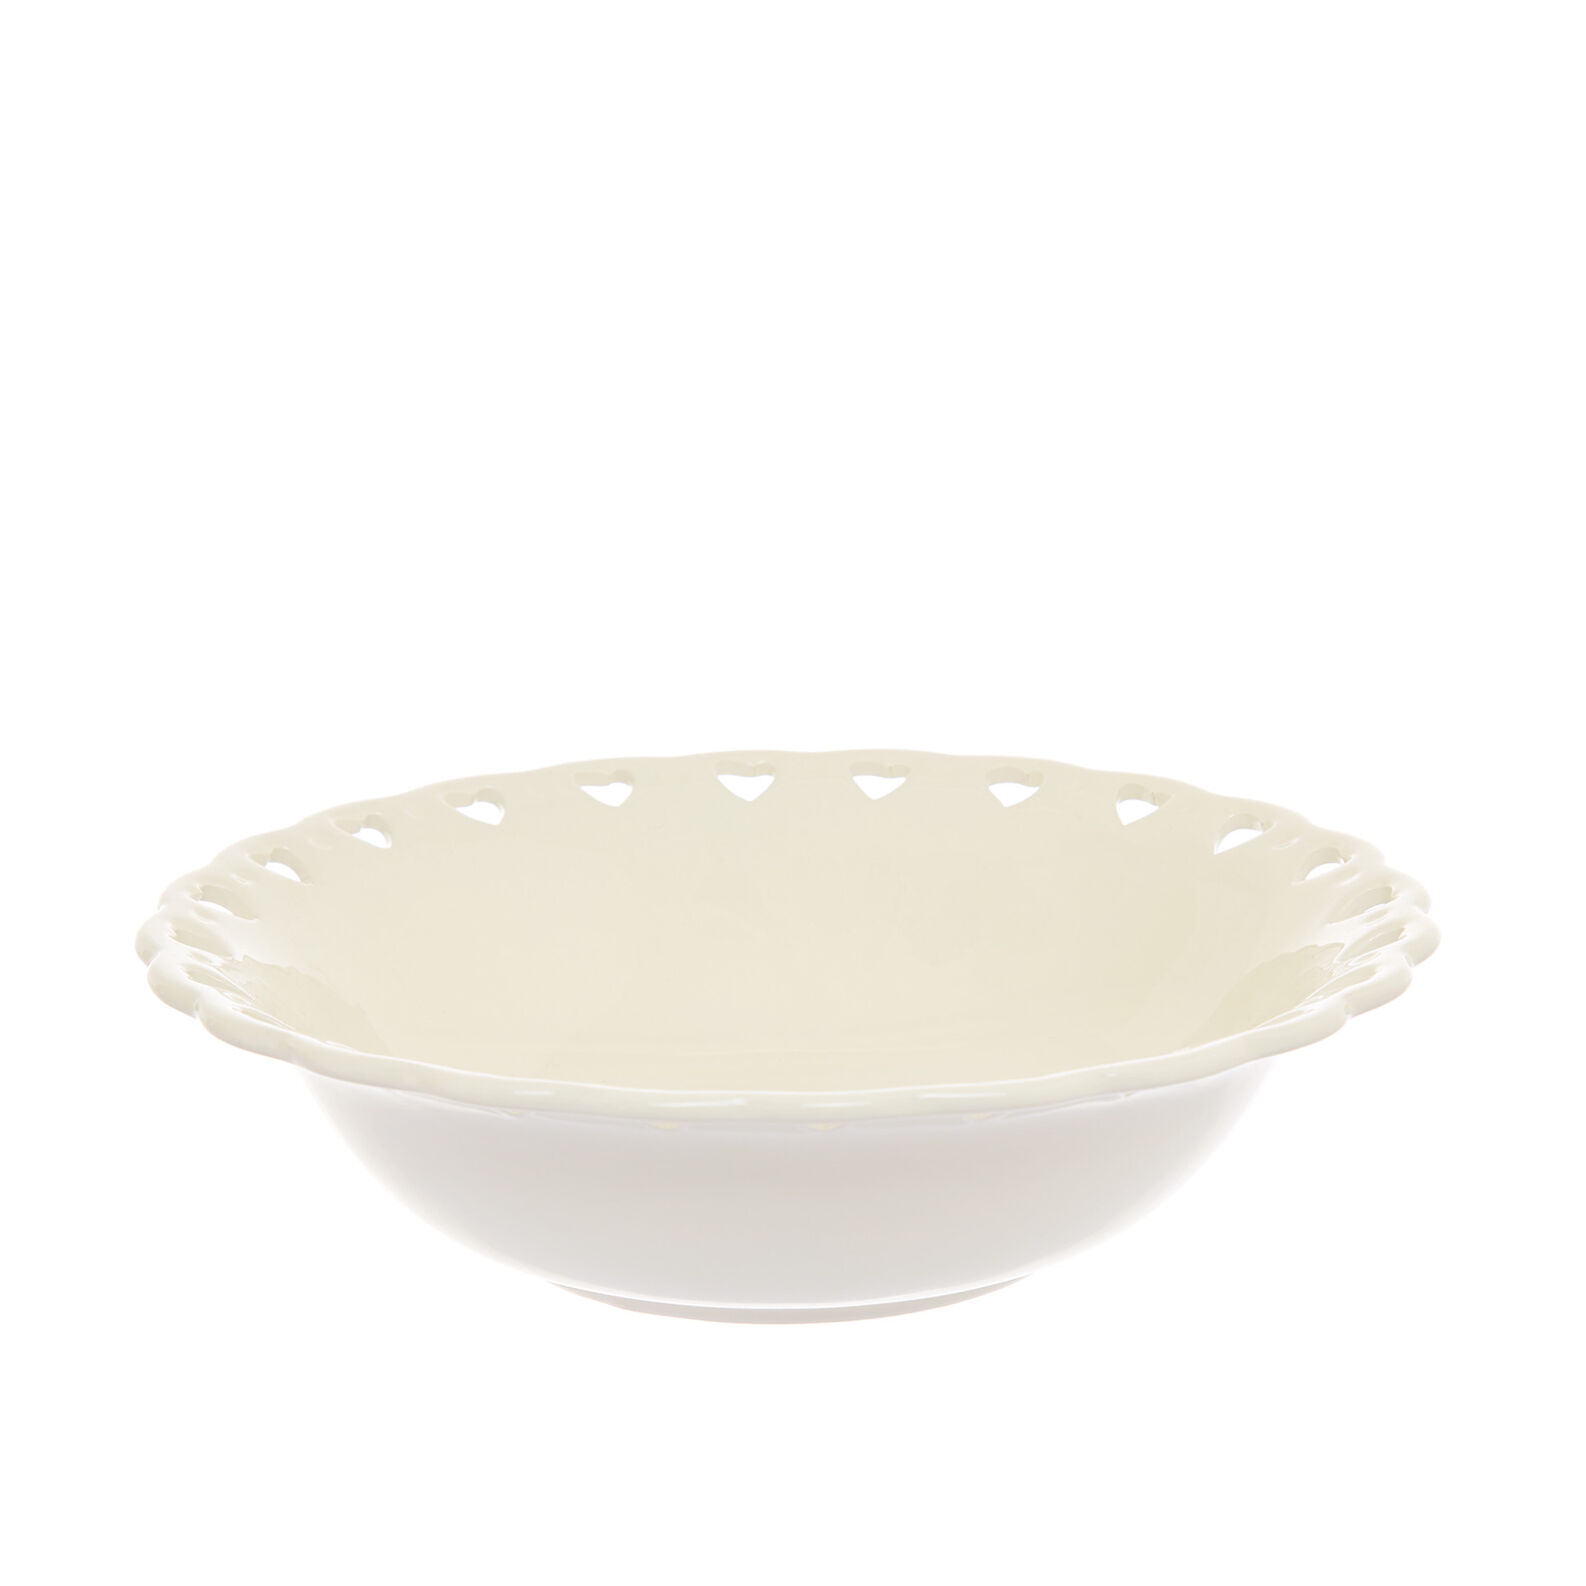 Ceramic salad bowl with openwork hearts